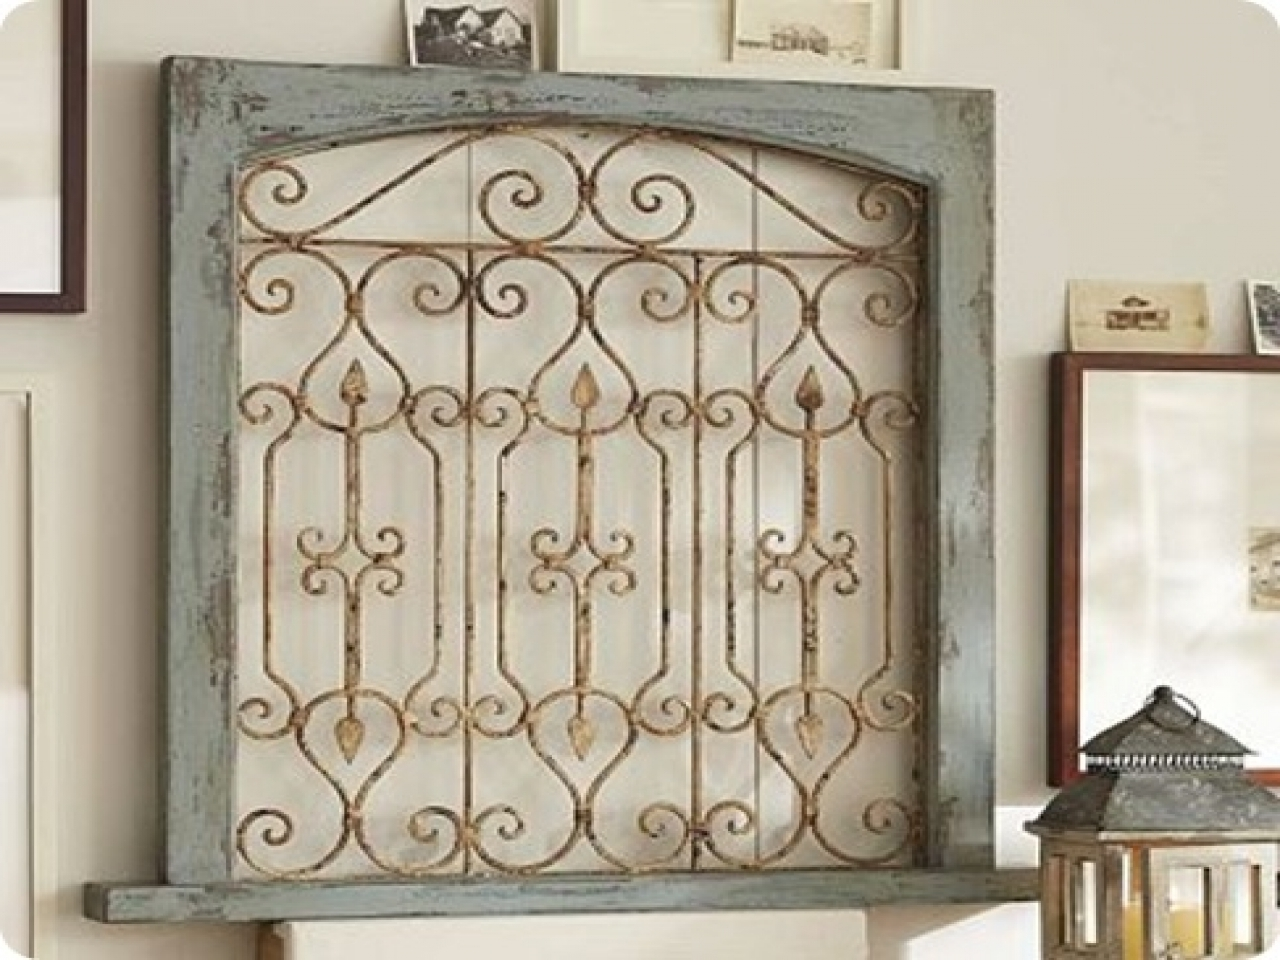 Most Recent Wall Art Designs: Kirklands Wall Art Garden Gate Wall Decor Iron With Regard To Iron Gate Wall Art (View 2 of 15)